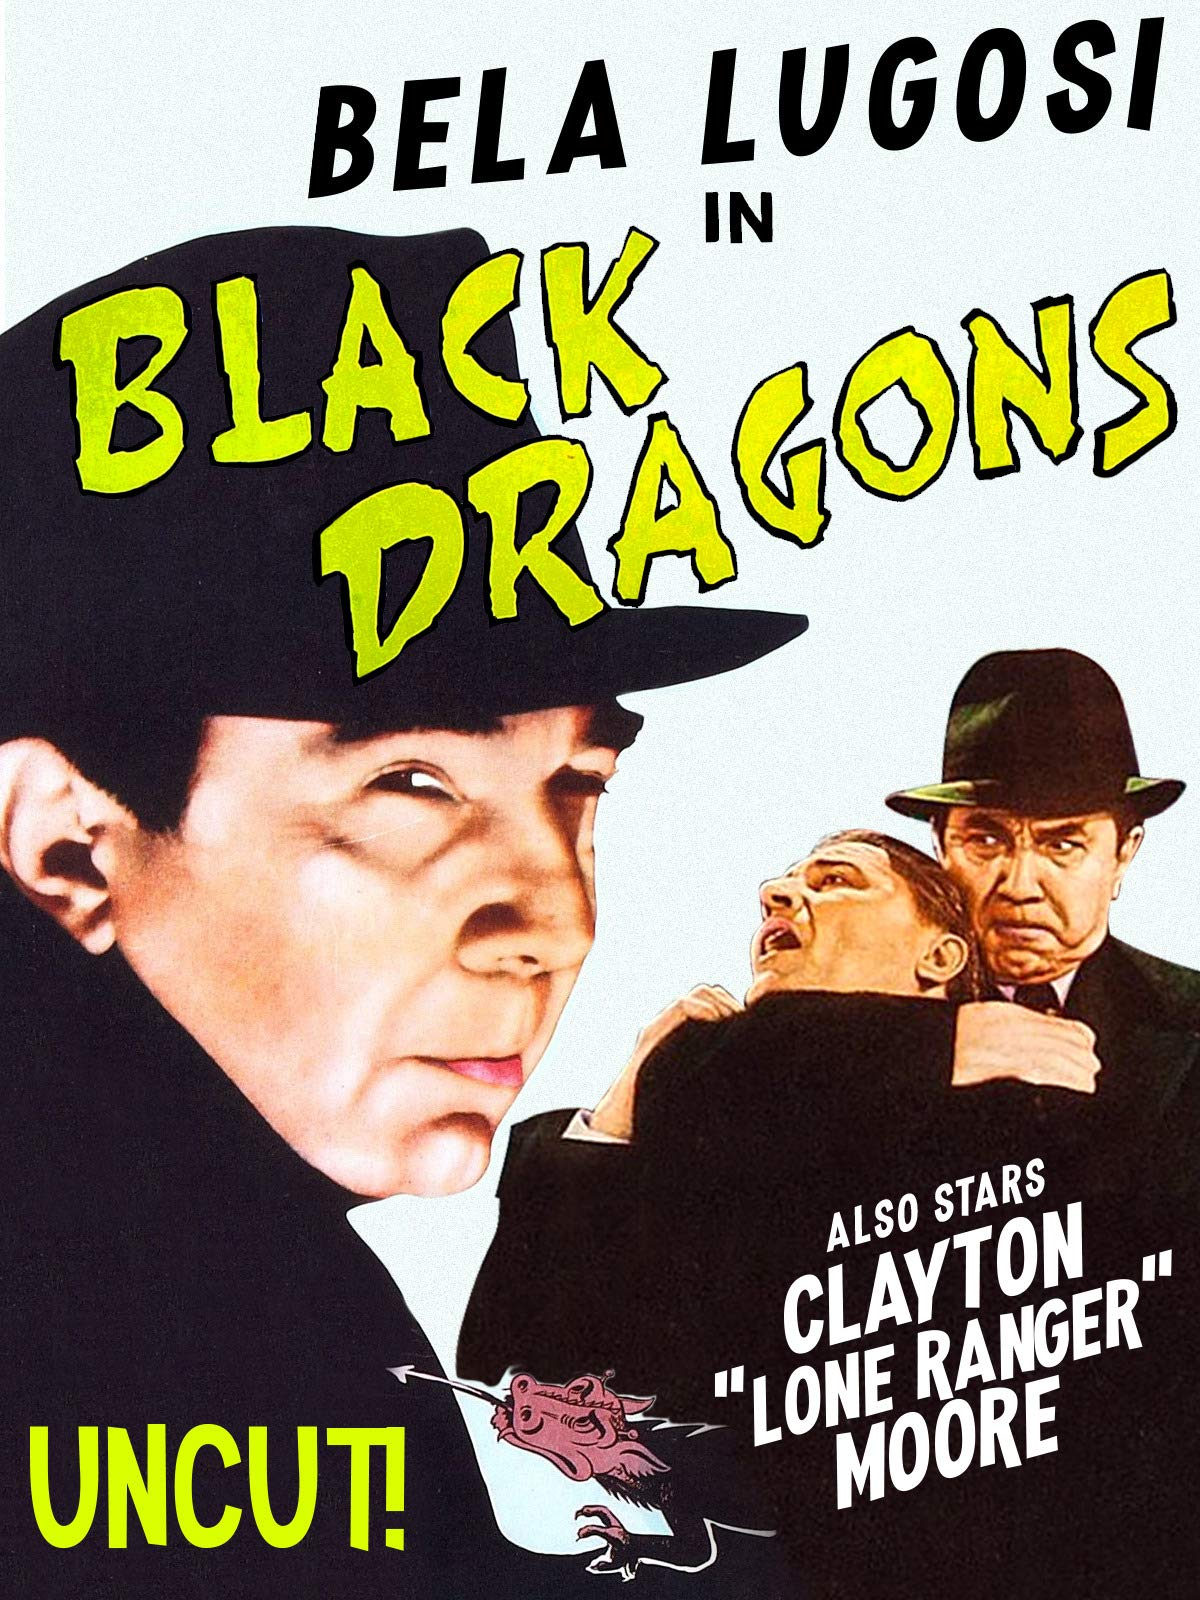 "Bela Lugosi In Black Dragons - Also Stars Clayton ""Lone Ranger"" Moore, Uncut!"